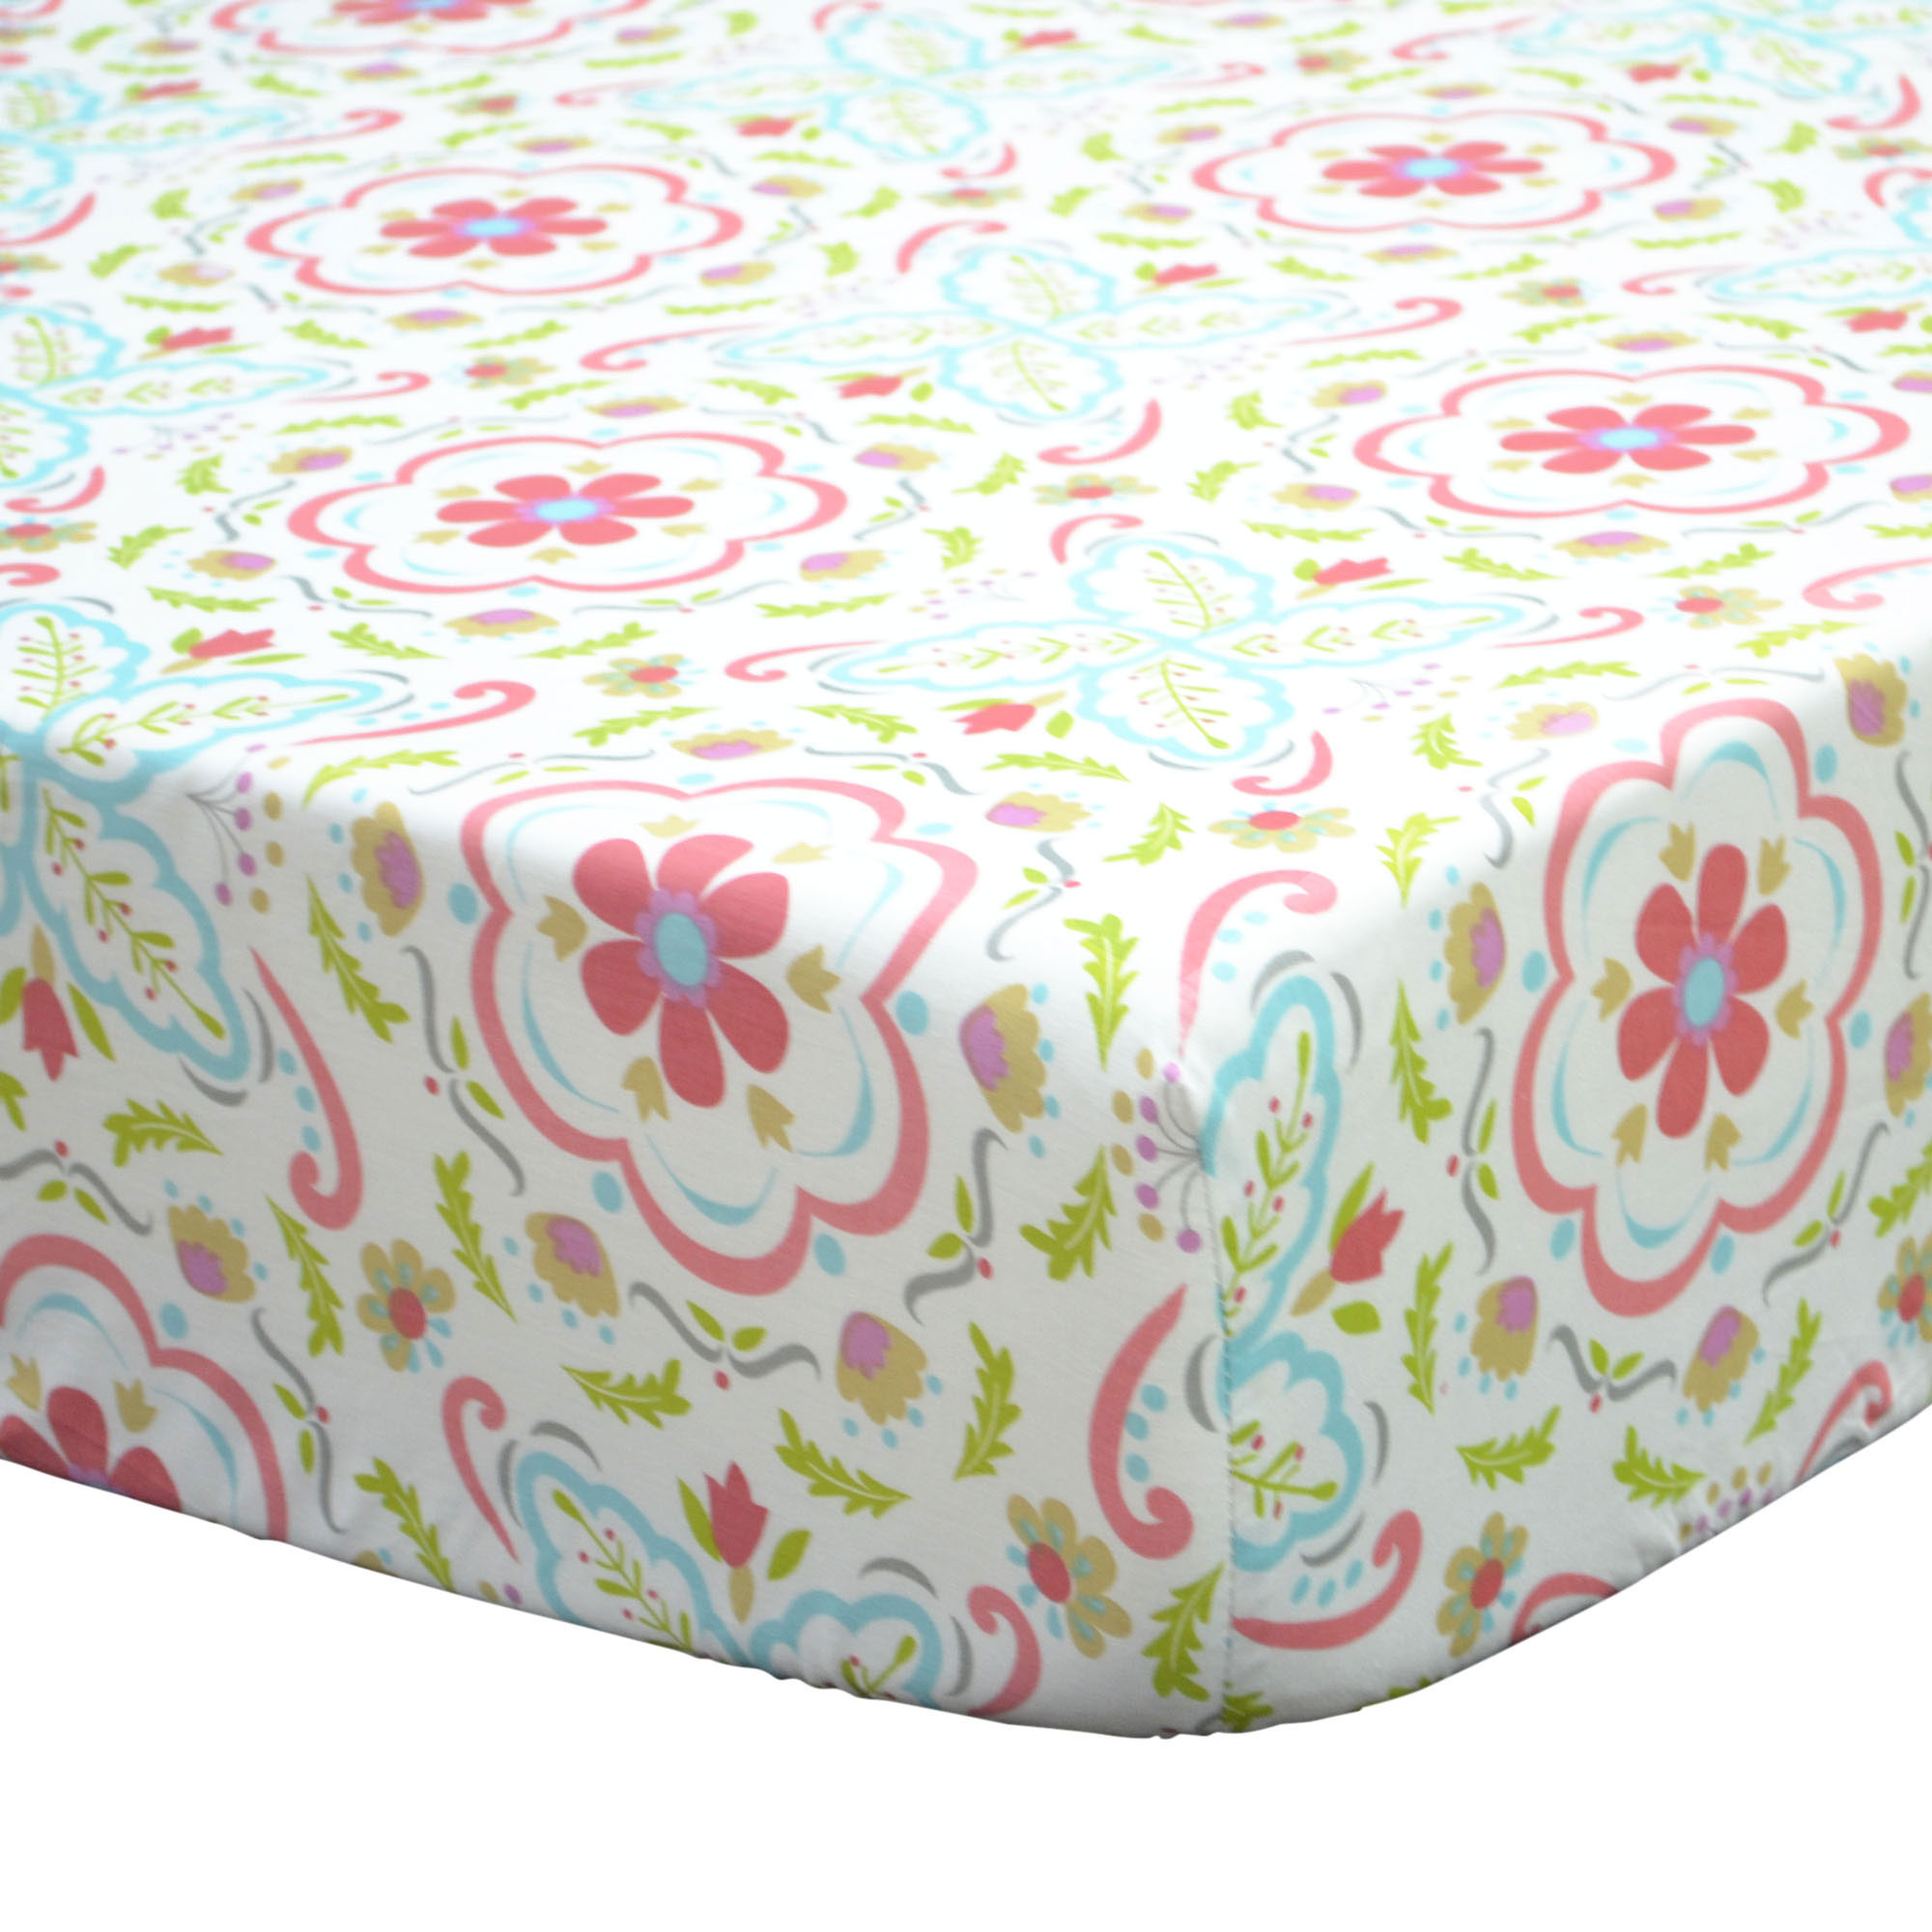 The Peanut Shell Baby Girl Crib Sheet - Coral and Aqua Floral - Gia Collection